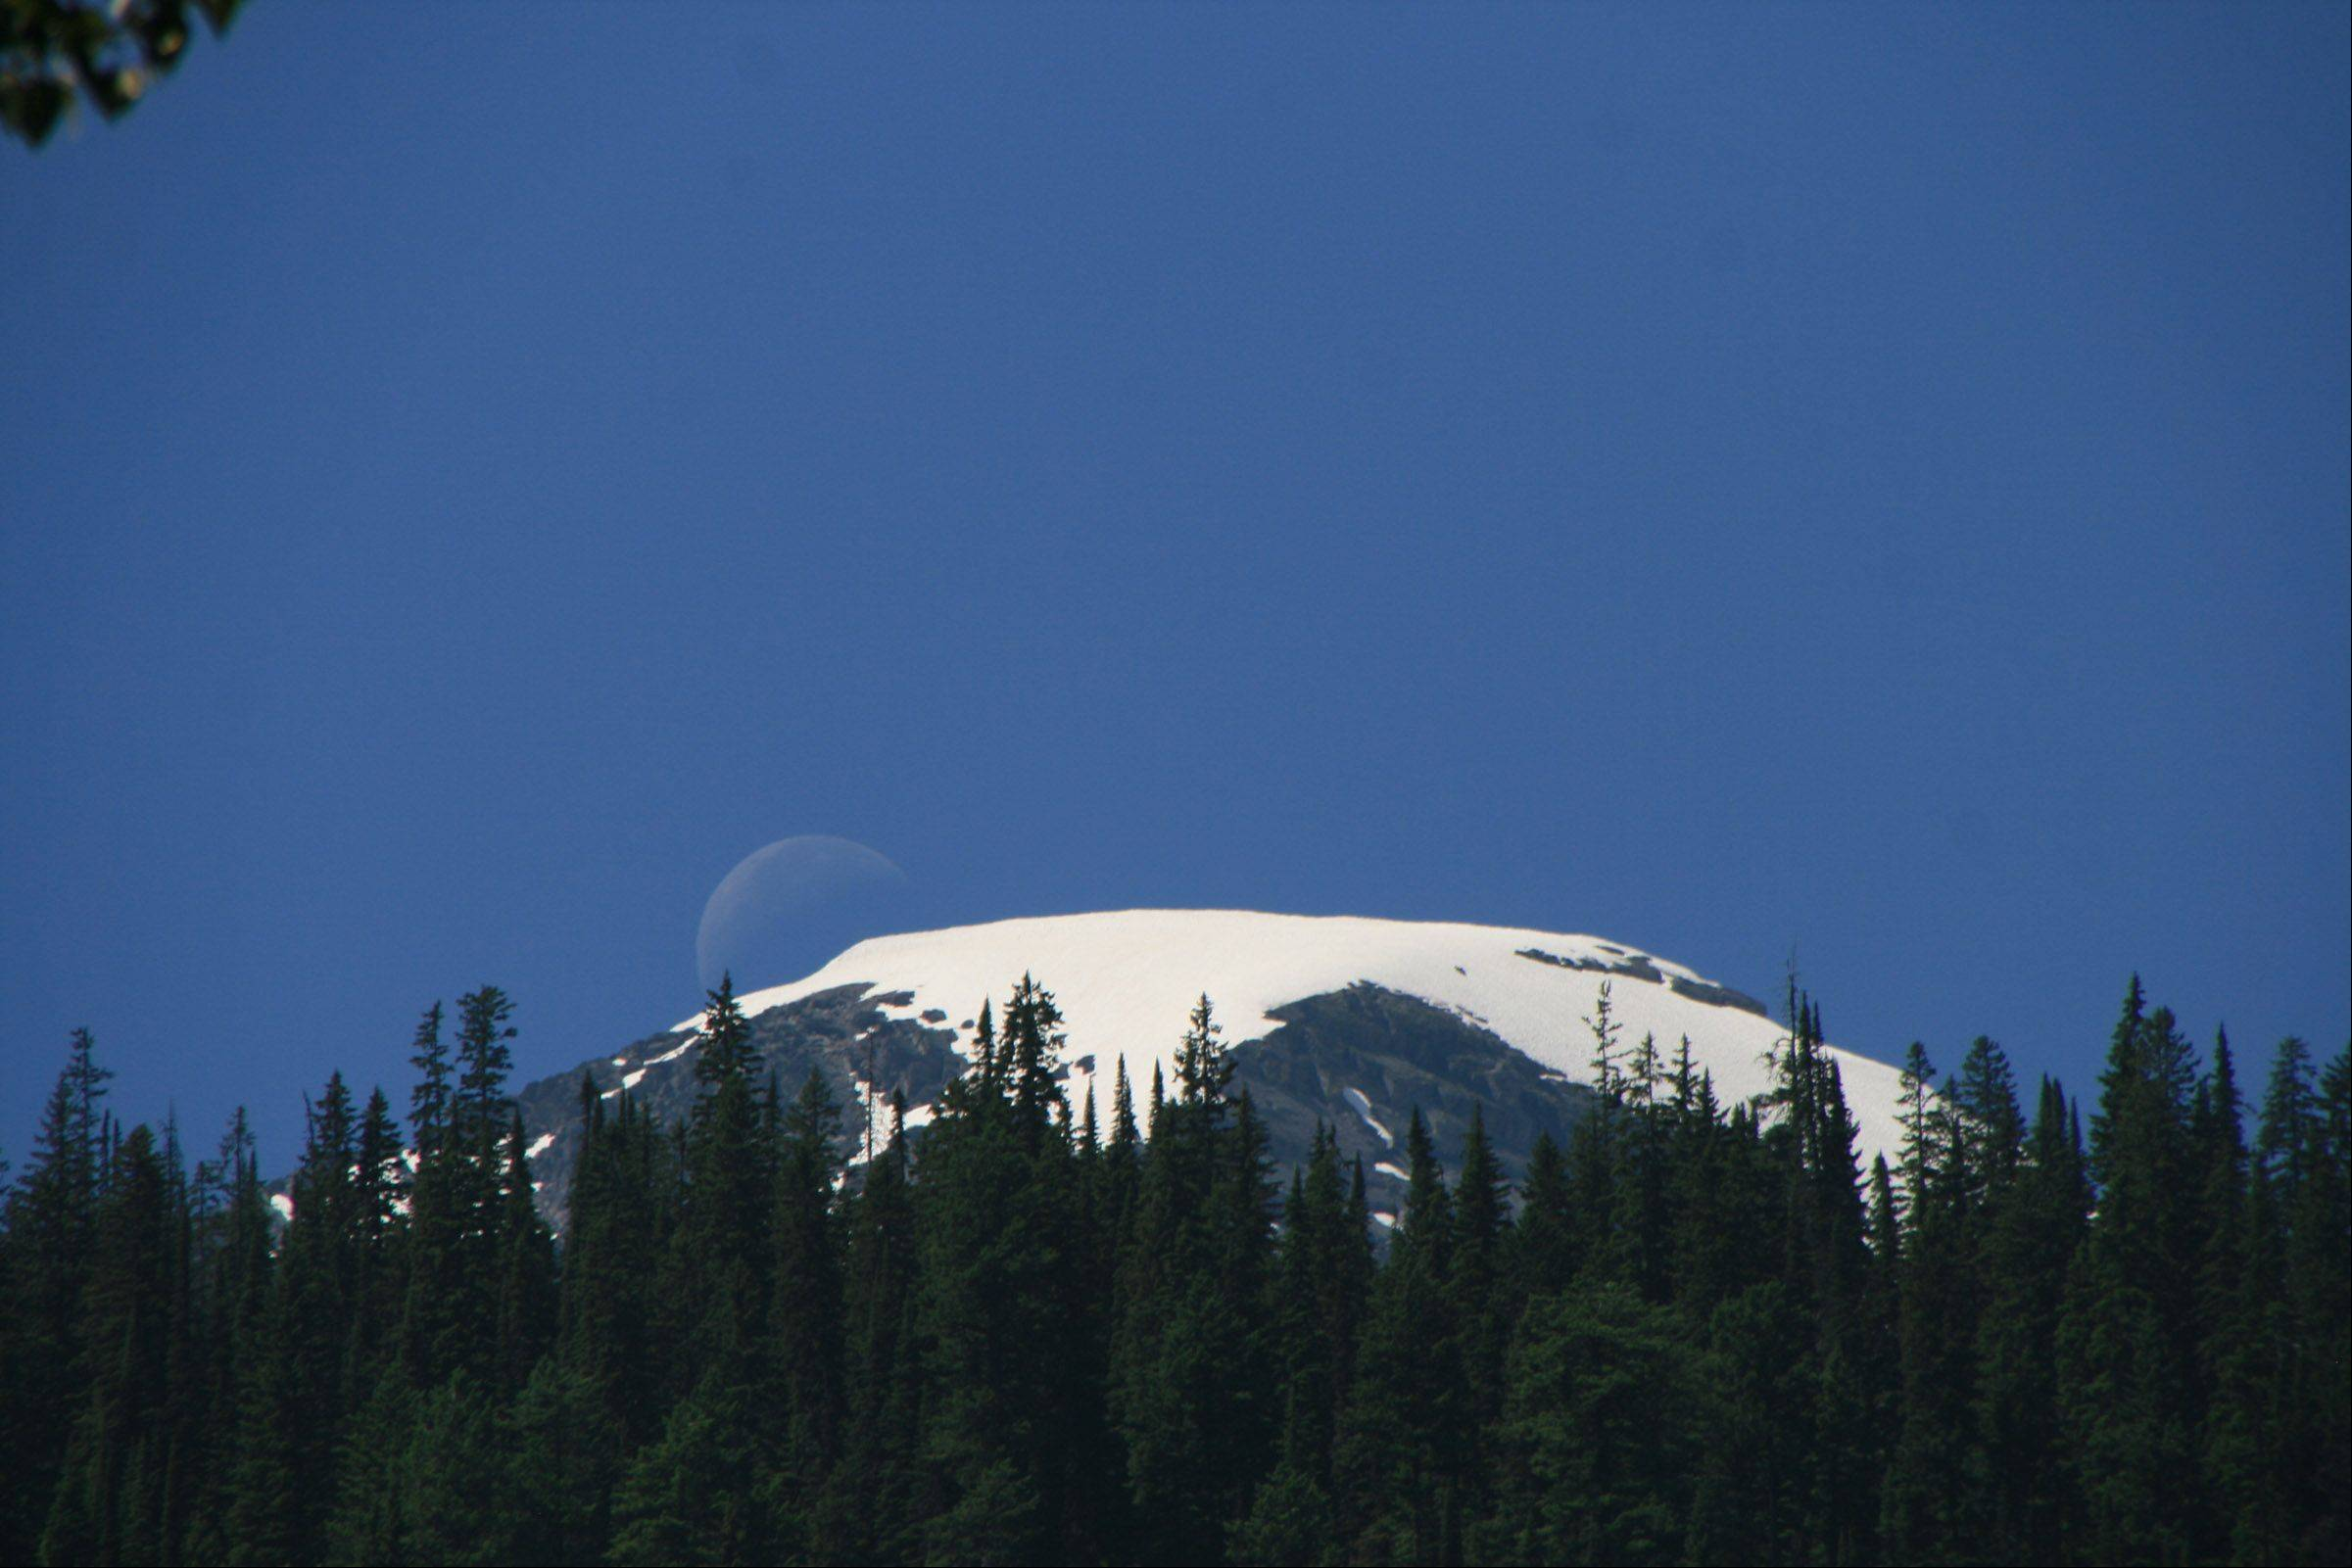 This photo was taken in Glacier National Park a few weeks ago. As I was enjoying a hike I noticed that the moon was showing clearly above this snowy peak even though it was mid afternoon. What a treasure our national parks are!